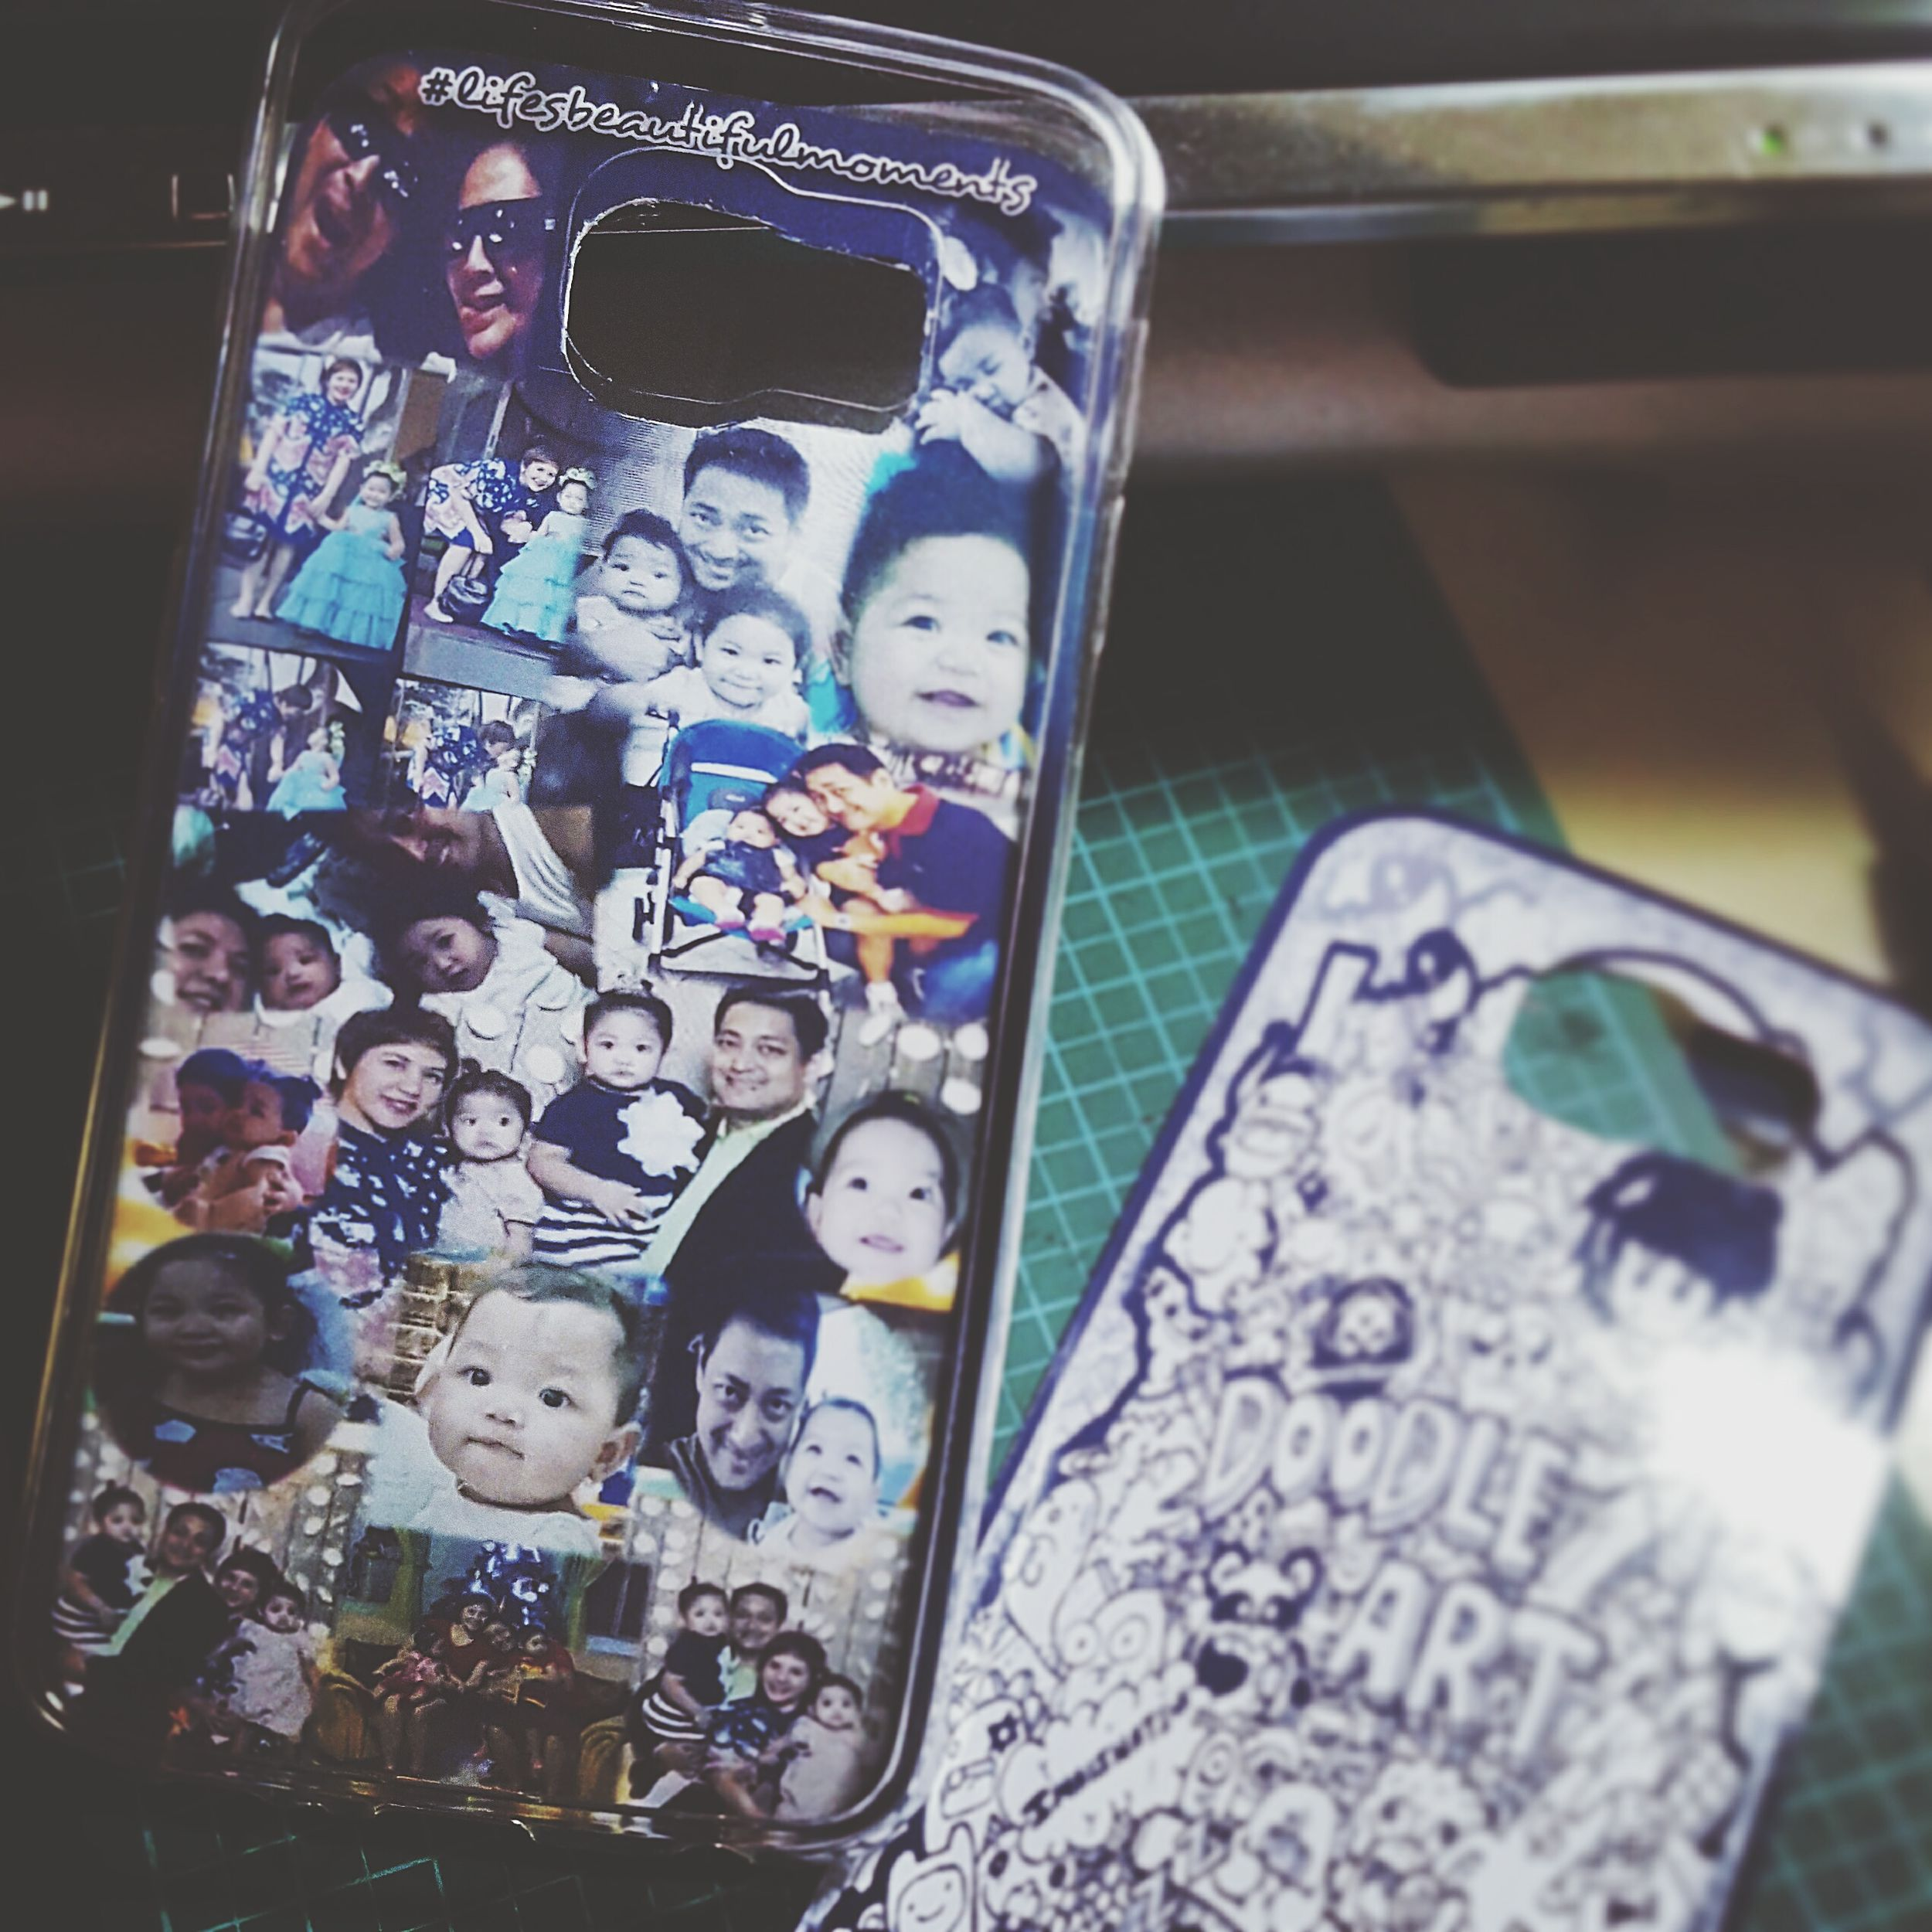 My Diybackcasecover S6casecover Photo Collage Iloveart Ilovediy Getting Inspired FamilyisLOVE FamilyIsEverything Godsgreatestgift